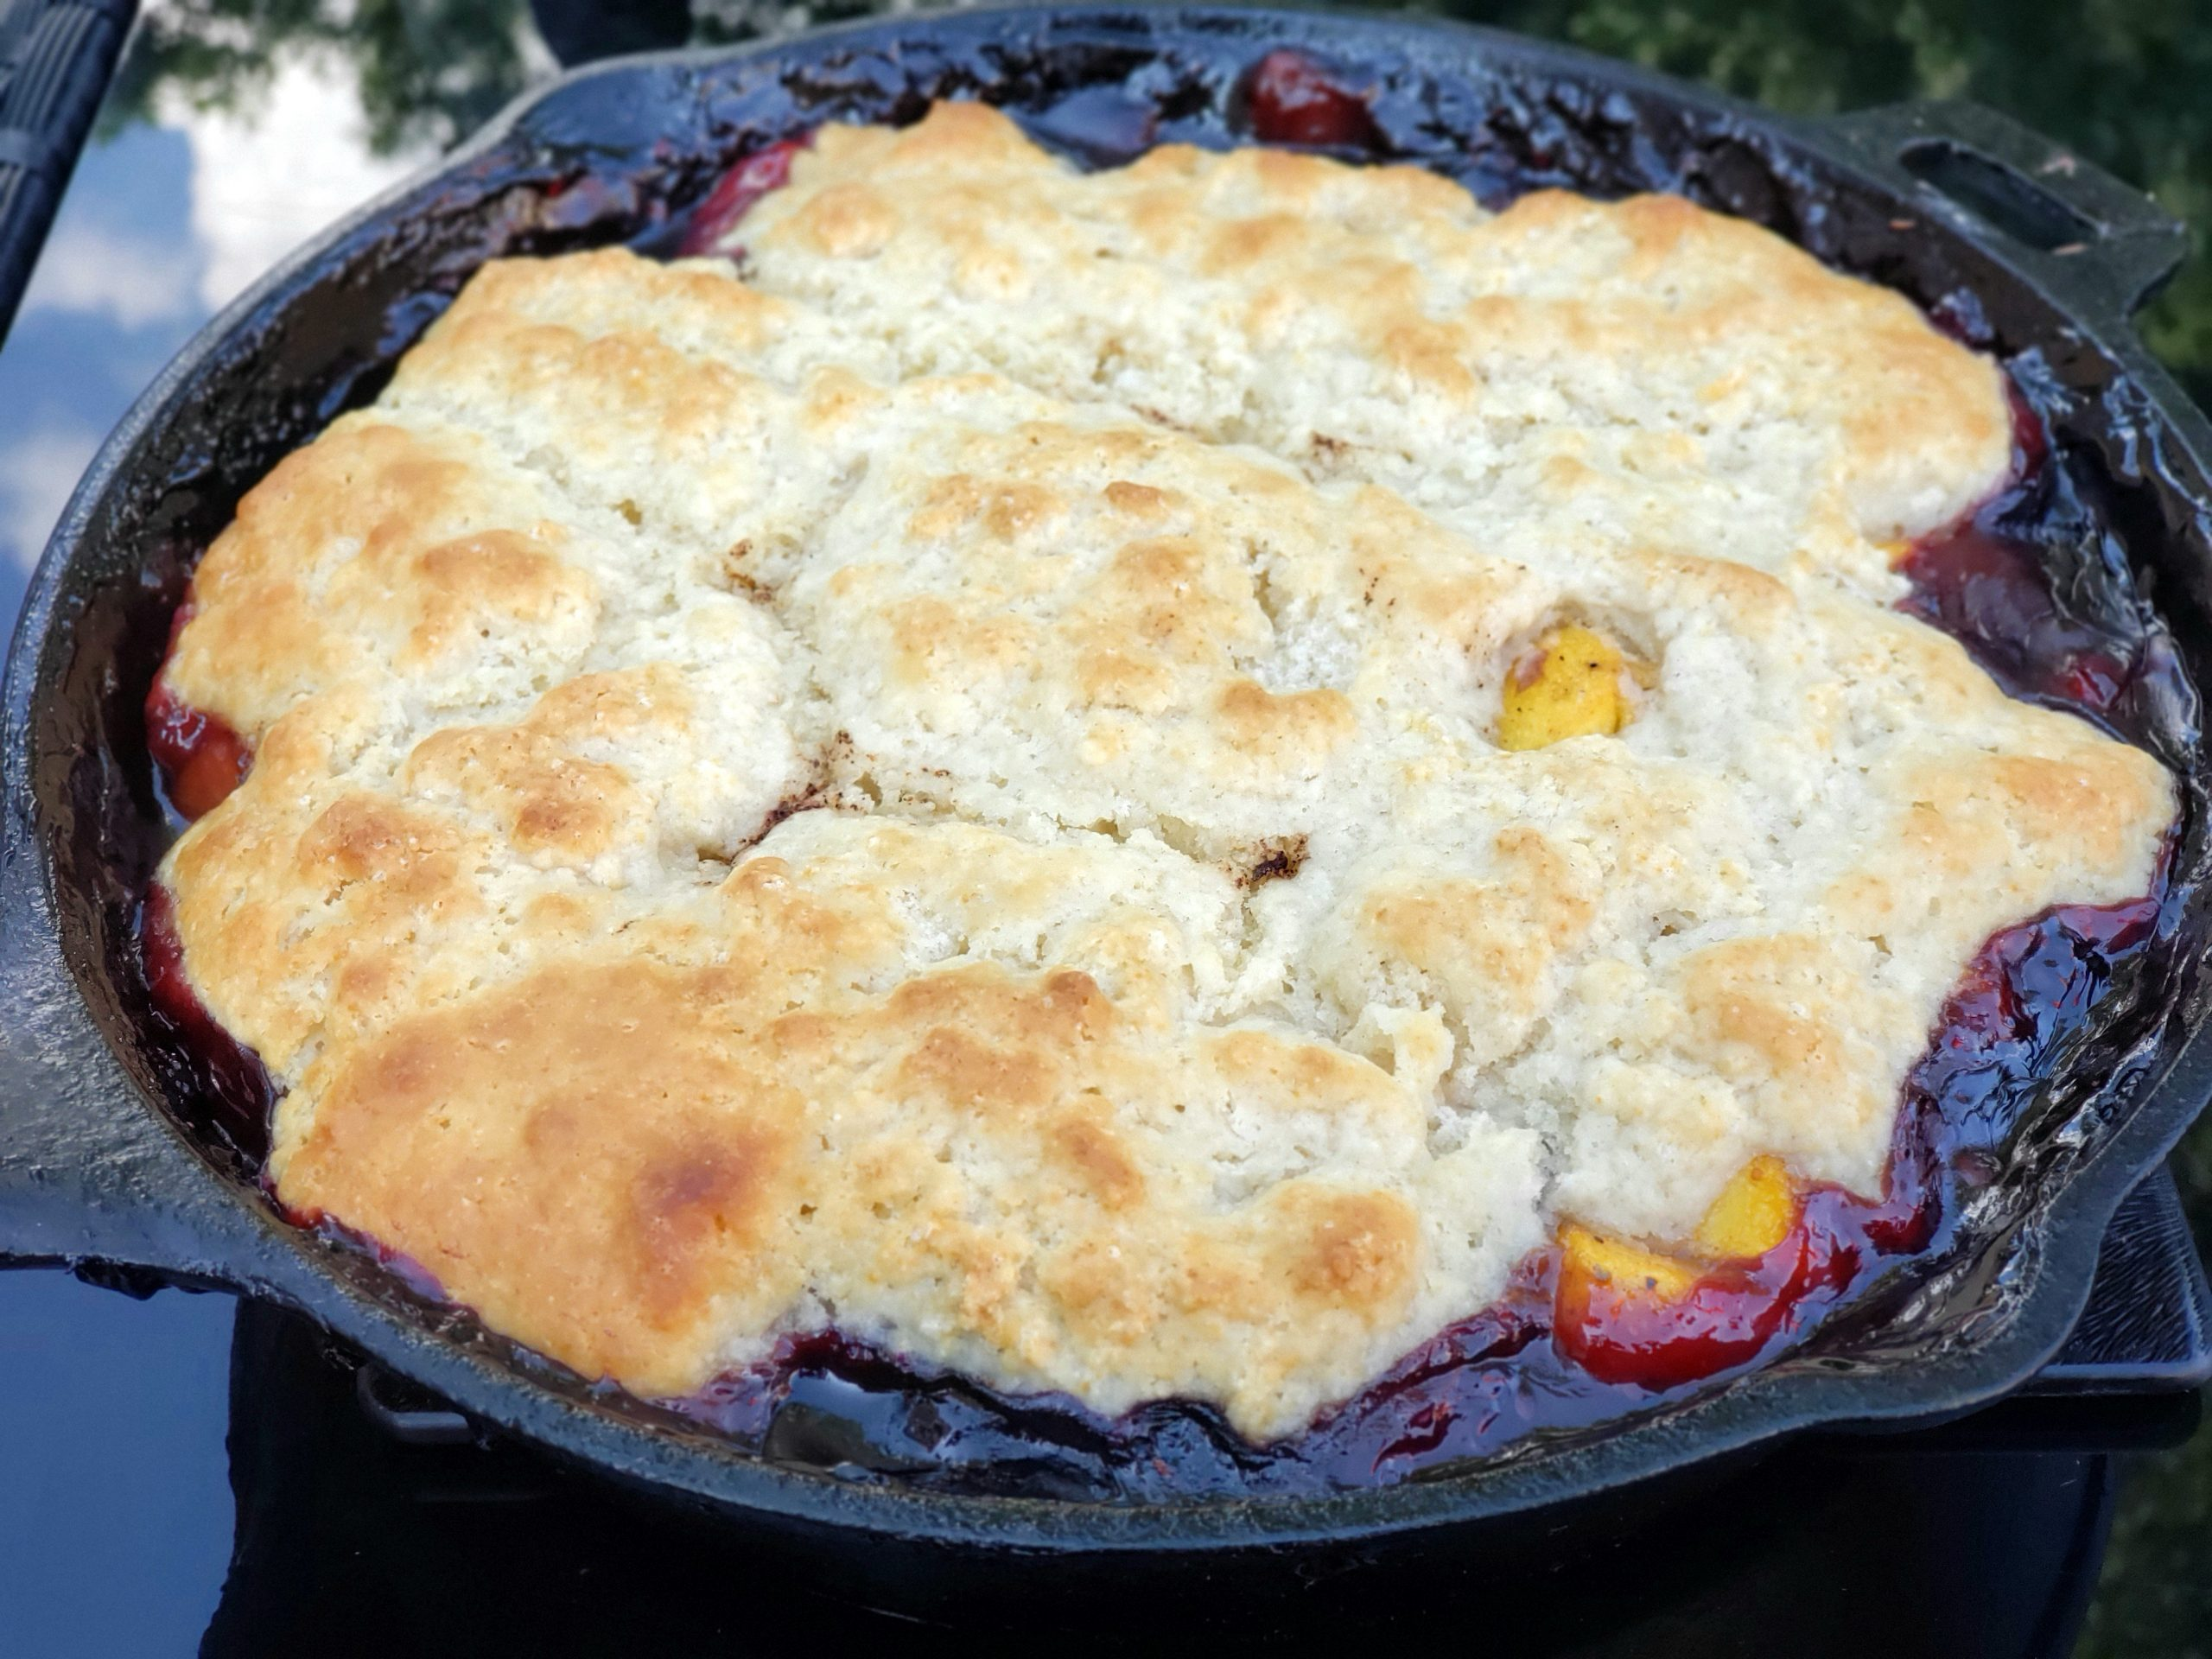 SWEEETHEAT Peach and Berry Cobbler